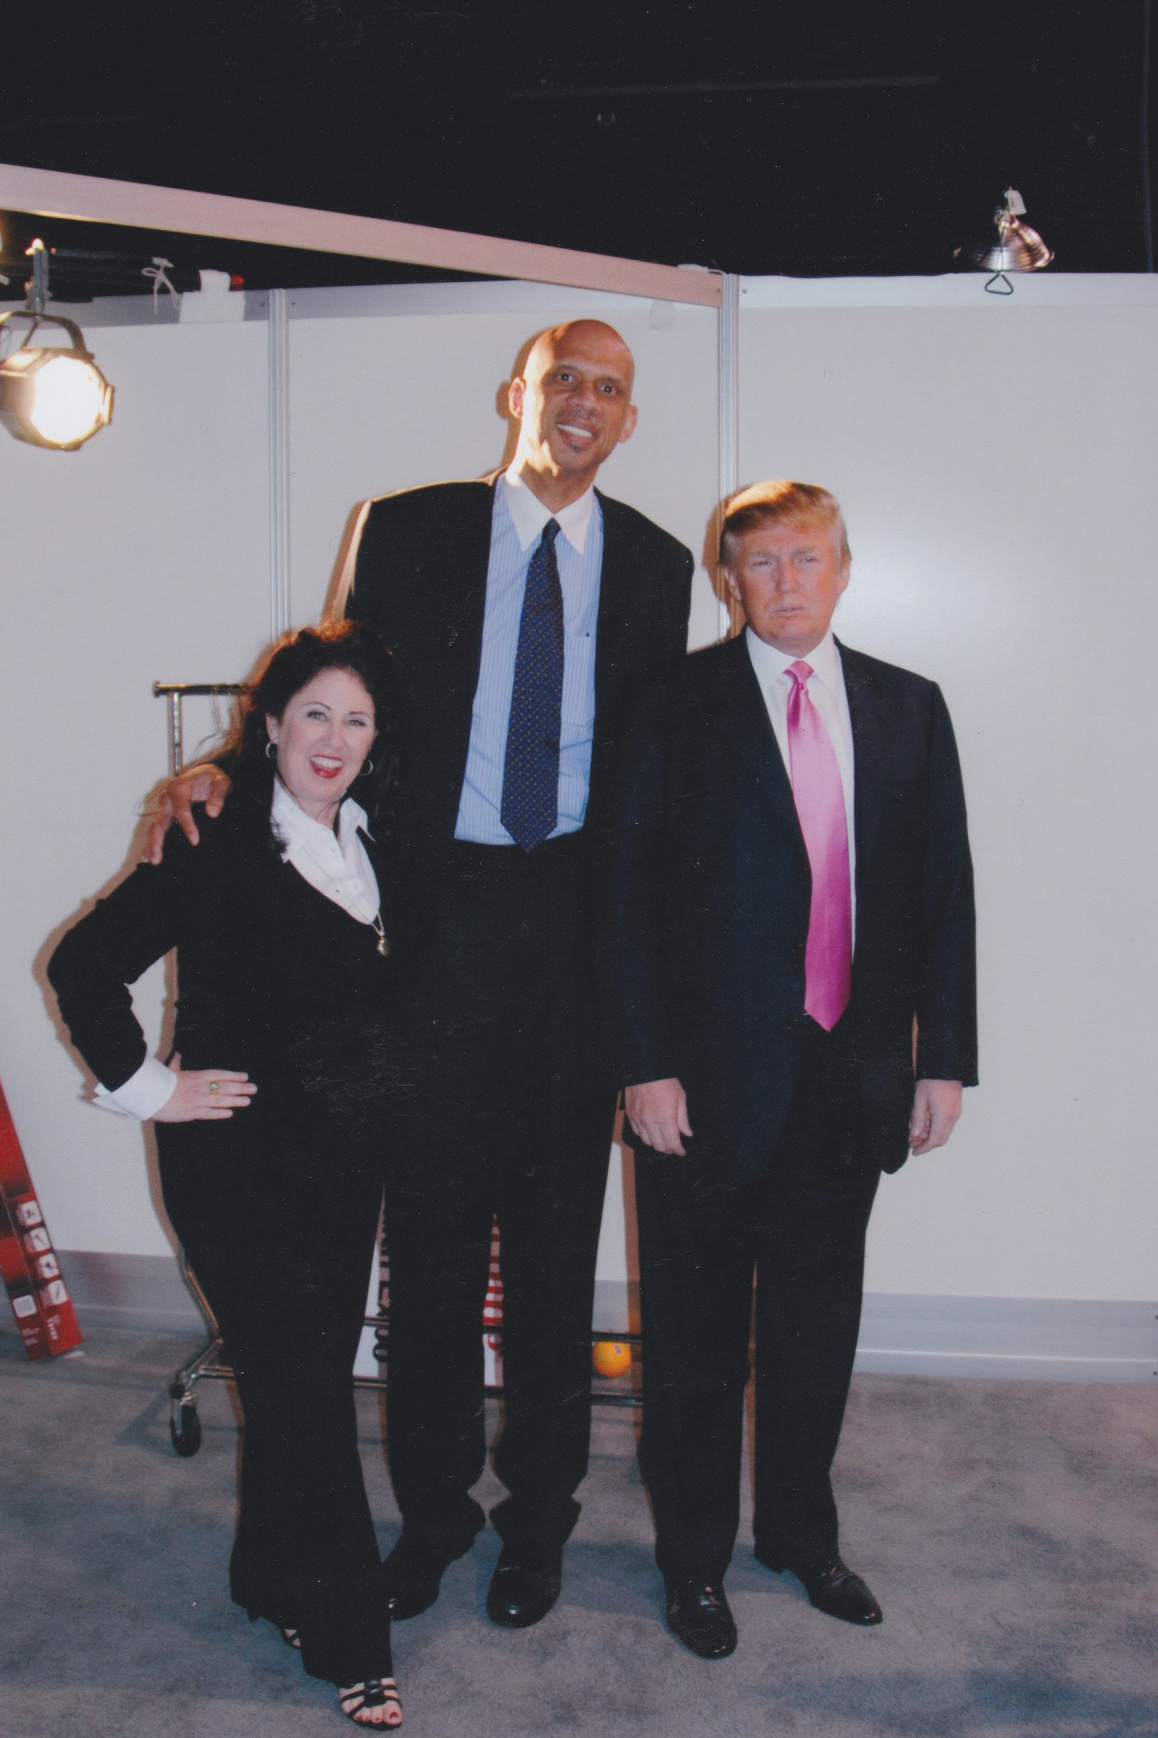 My manager Deborah Morales and I with Trump several years ago, before he forgot there are Muslim athletes